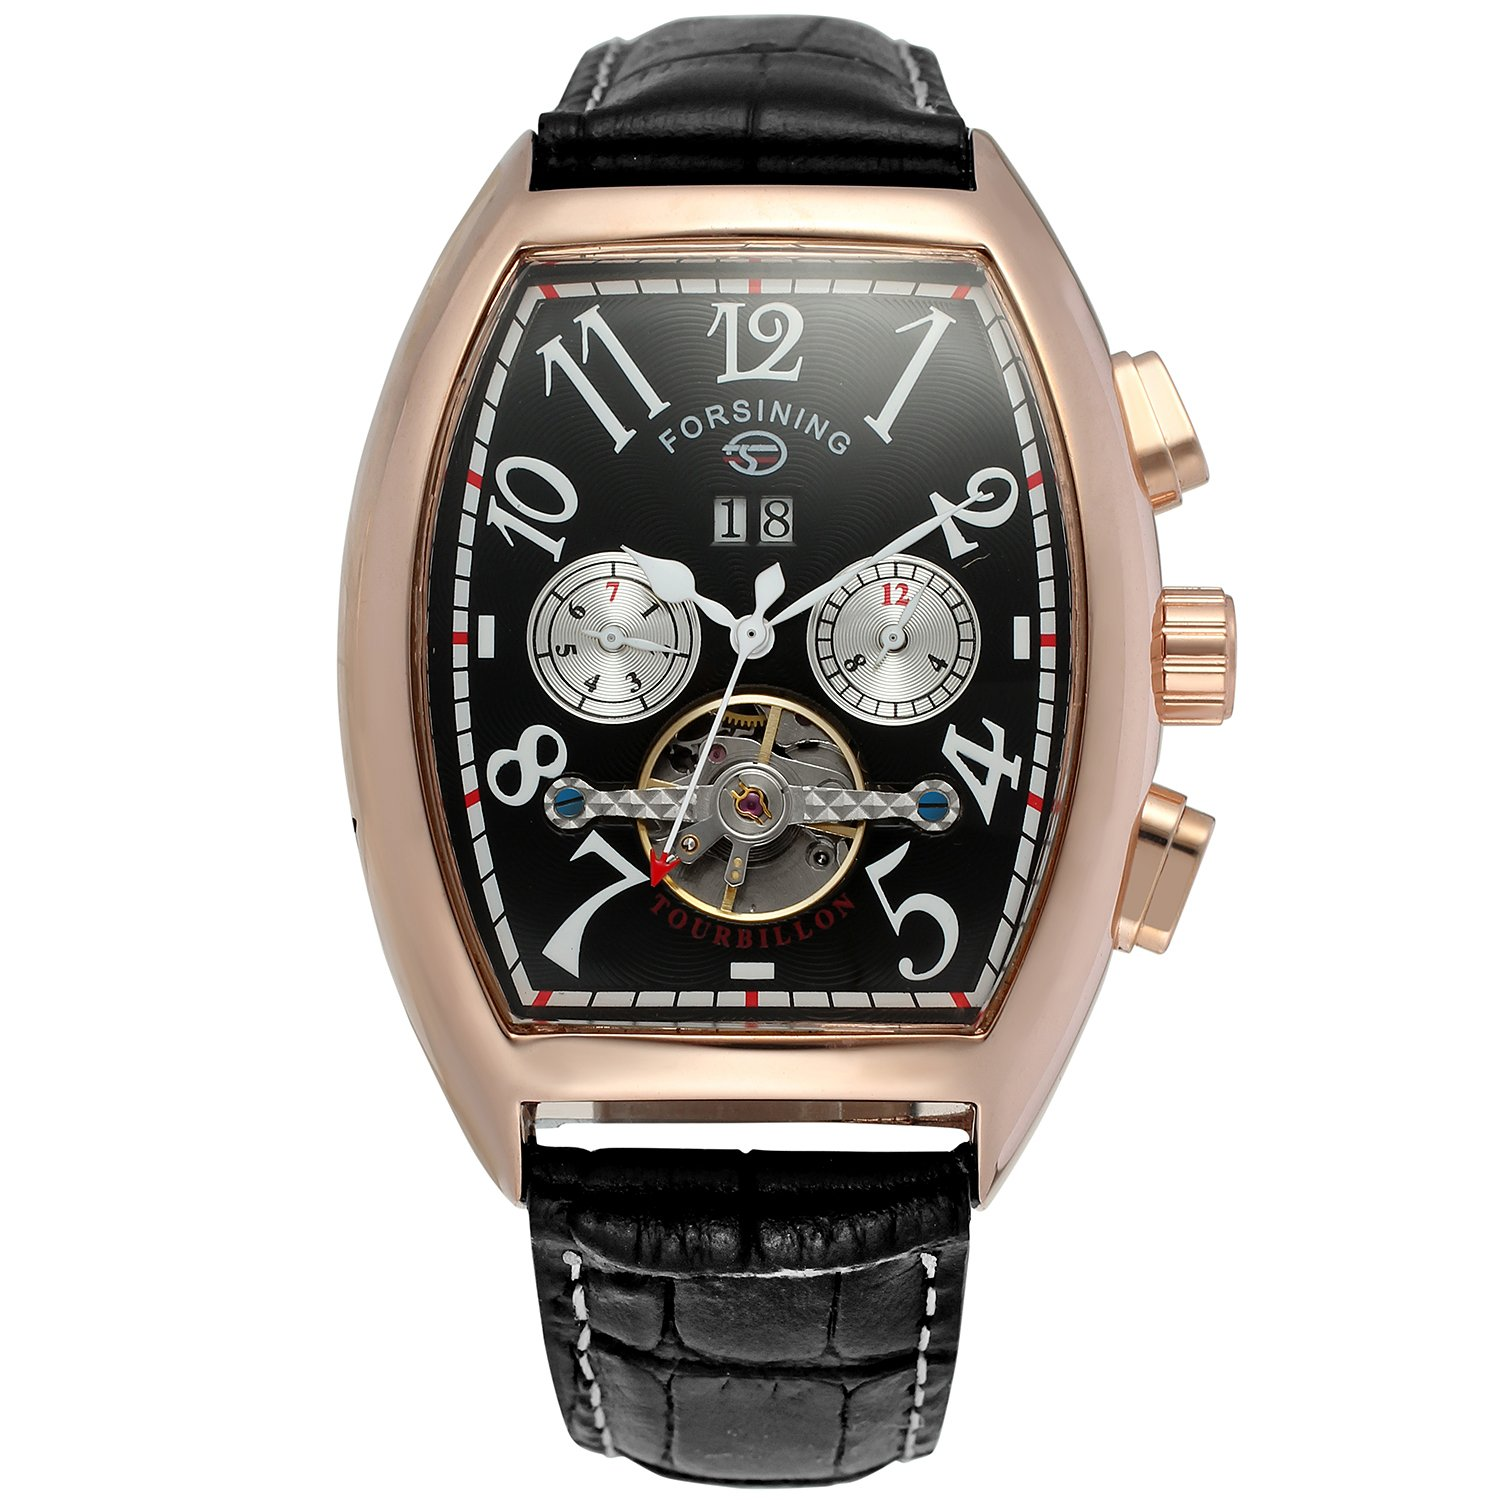 Forsining Men's Automatic Self-winding Tourbillon Calendar Brand Learher Strap Collectiton Watch FSG9409M3R5 by FORSINING (Image #6)